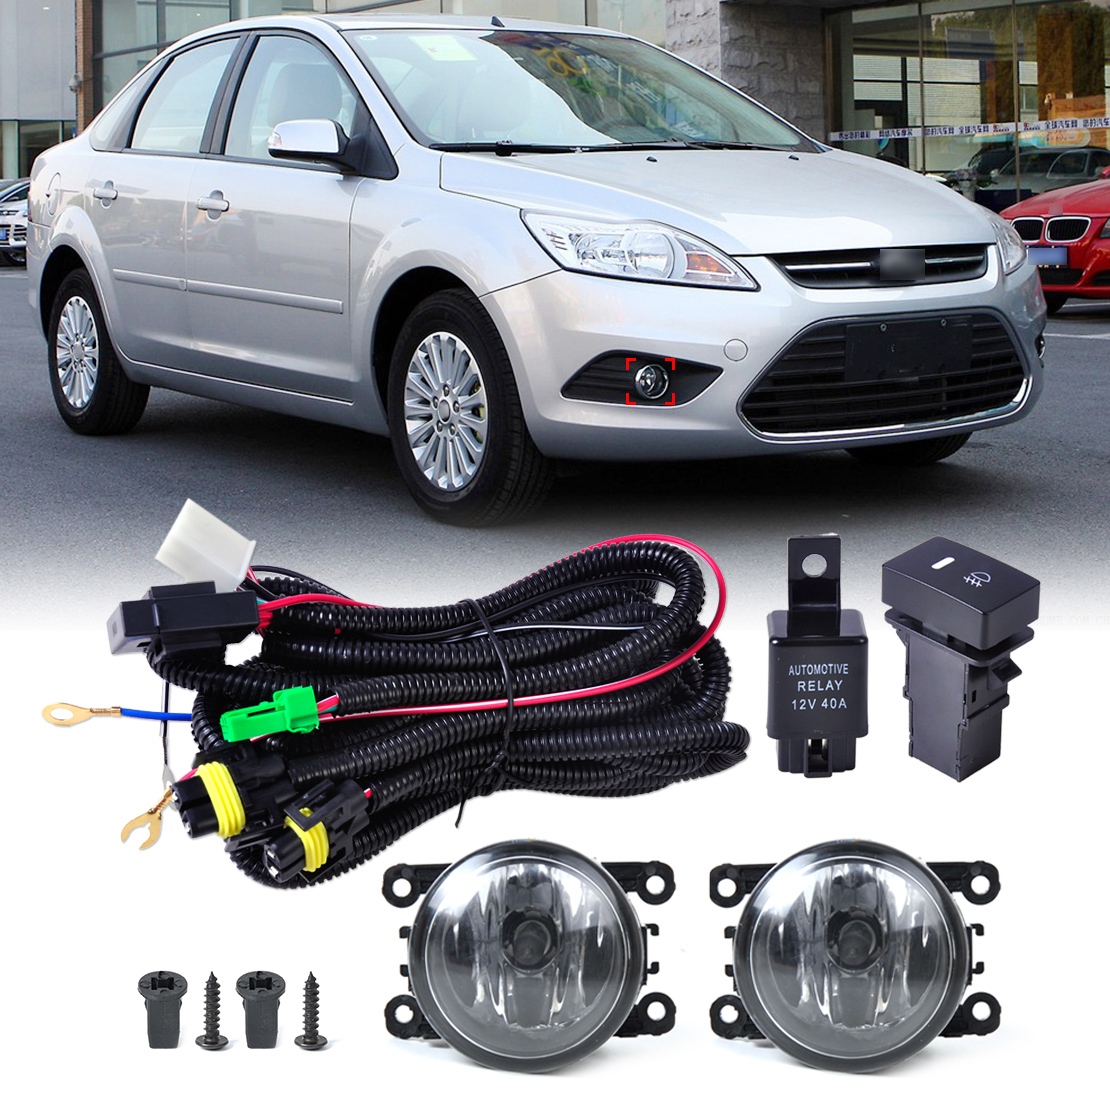 beler New Wiring Harness Sockets + Switch + 2 Fog Lights H11 Lamp 12V 55W 4F9Z-15200-AA Kit for Ford Mustang Lincoln Subaru for opel astra h gtc 2005 15 h11 wiring harness sockets wire connector switch 2 fog lights drl front bumper 5d lens led lamp